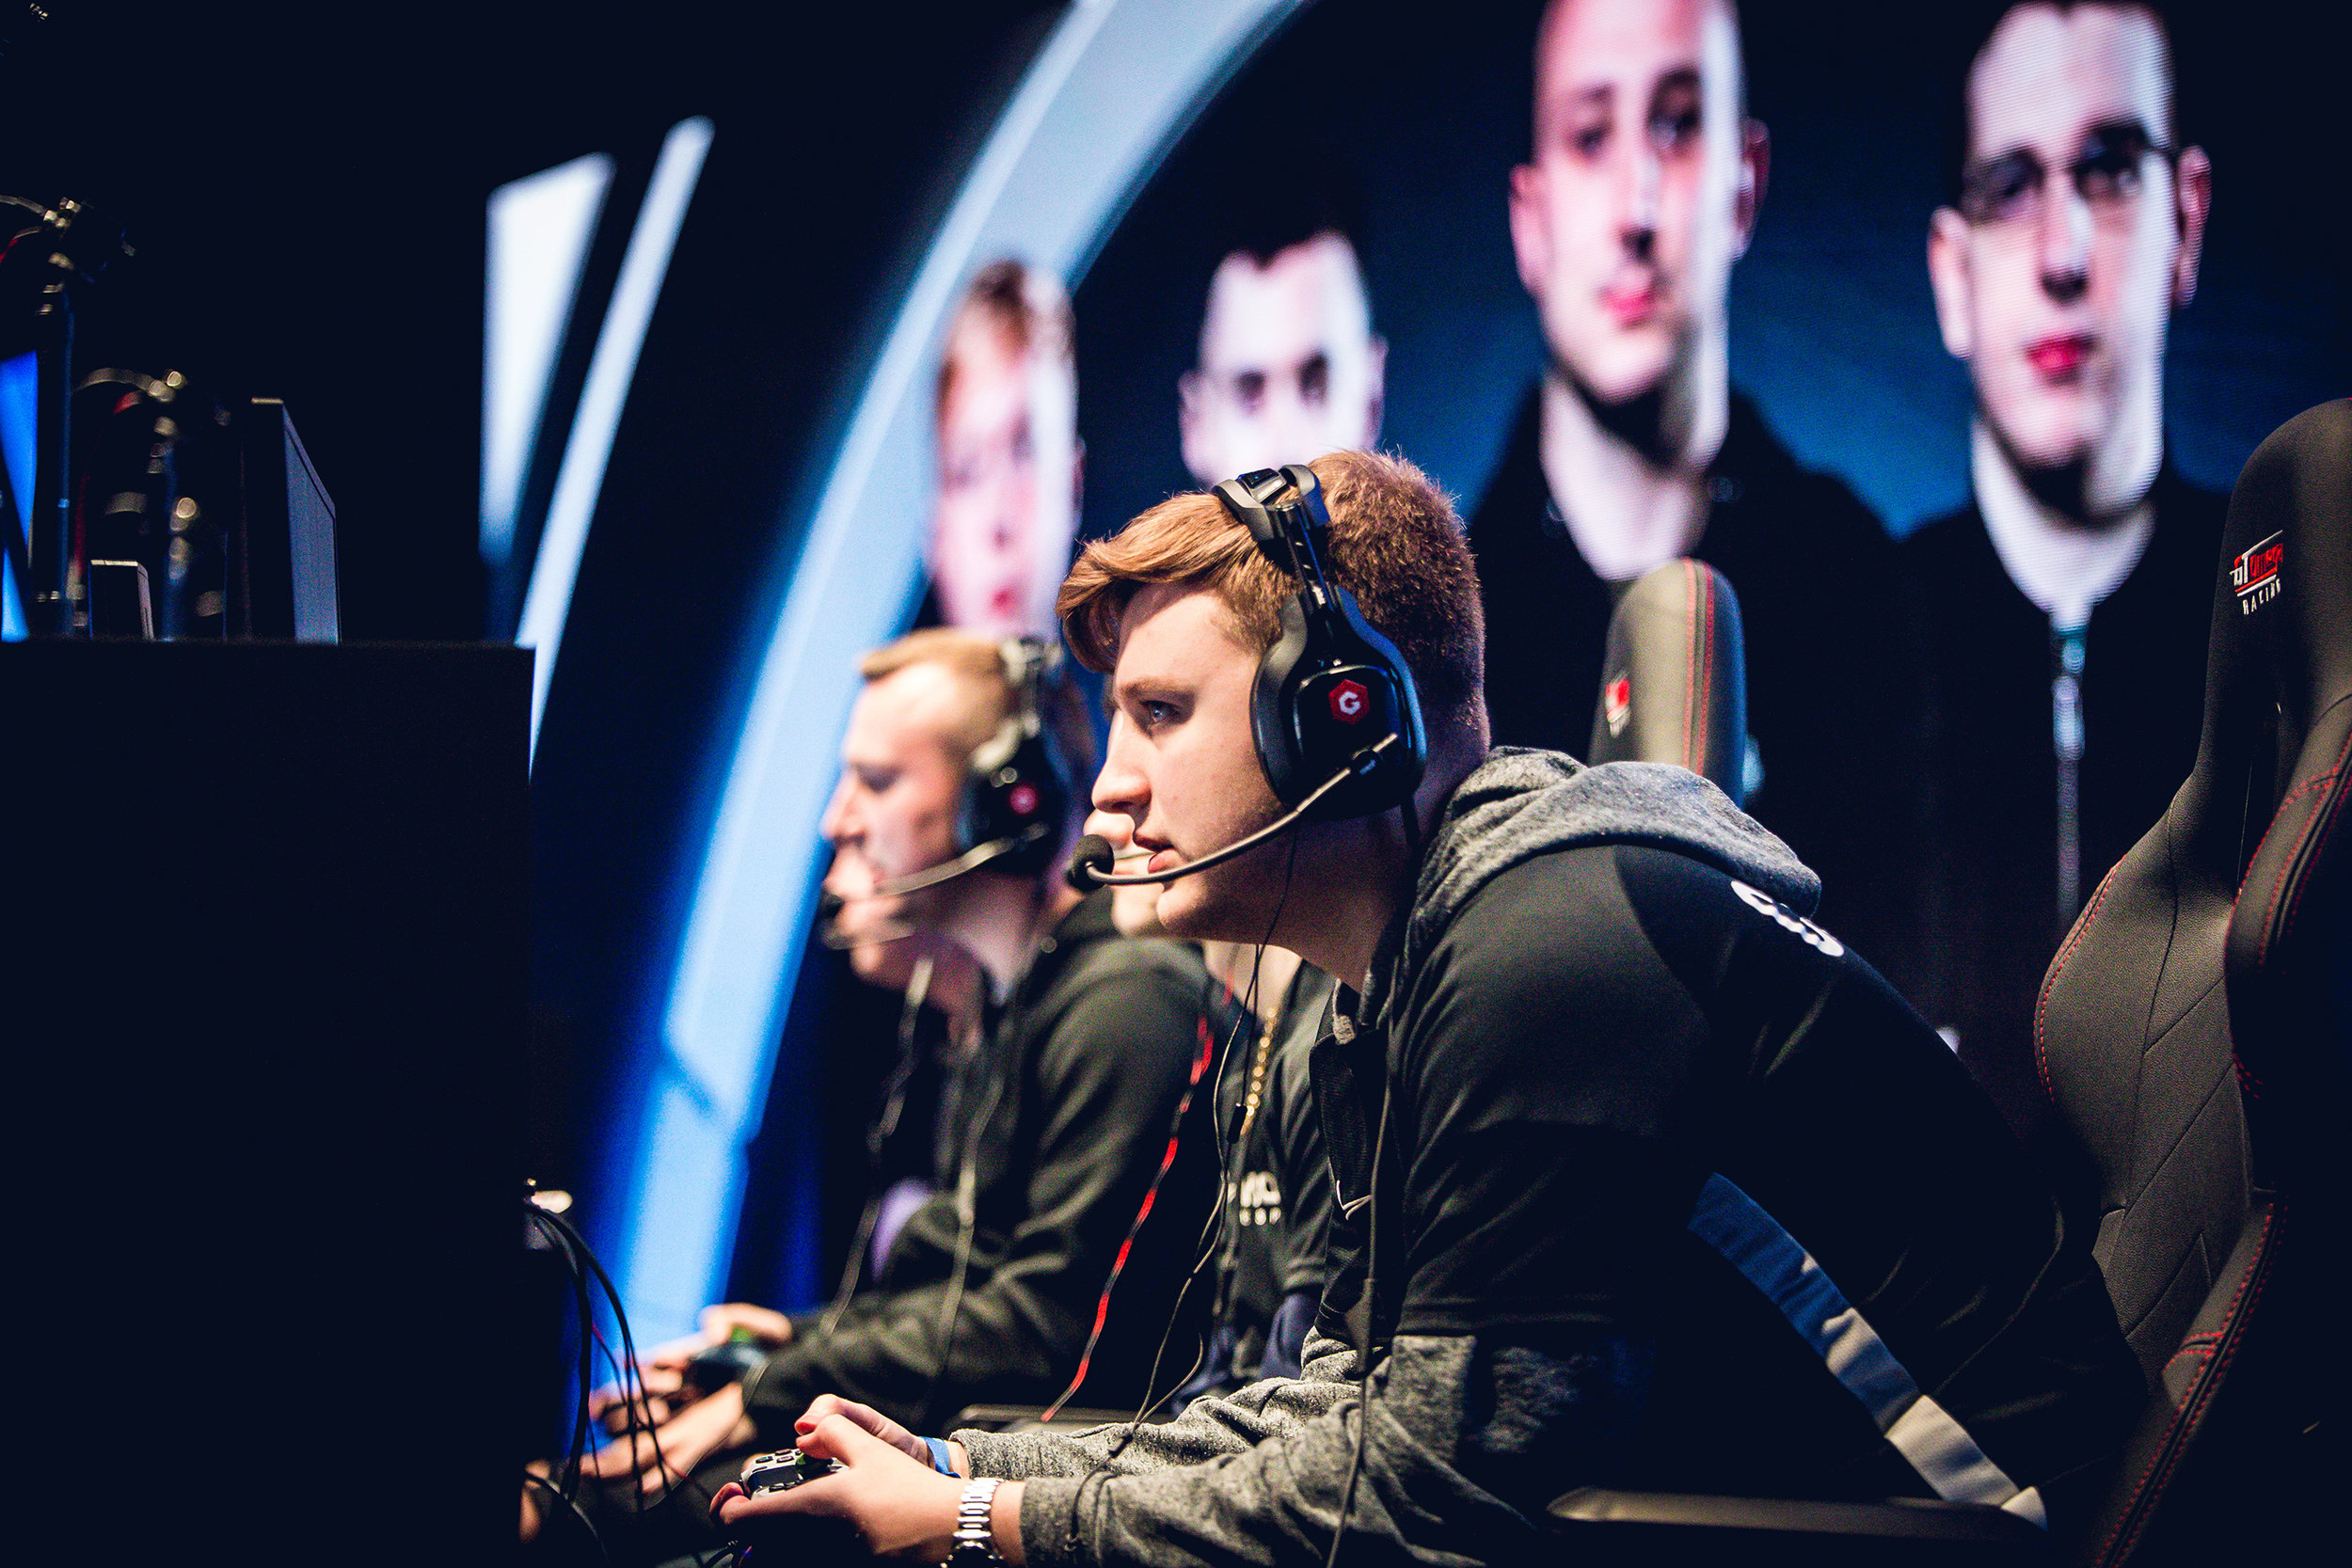 LONDON, ENGLAND - May 5, 2019: Esports professional gamers onstage at Copper Box Arena on May 3, 2019 in London, England. (Photo by Joao Ferreira/ESPAT Media)